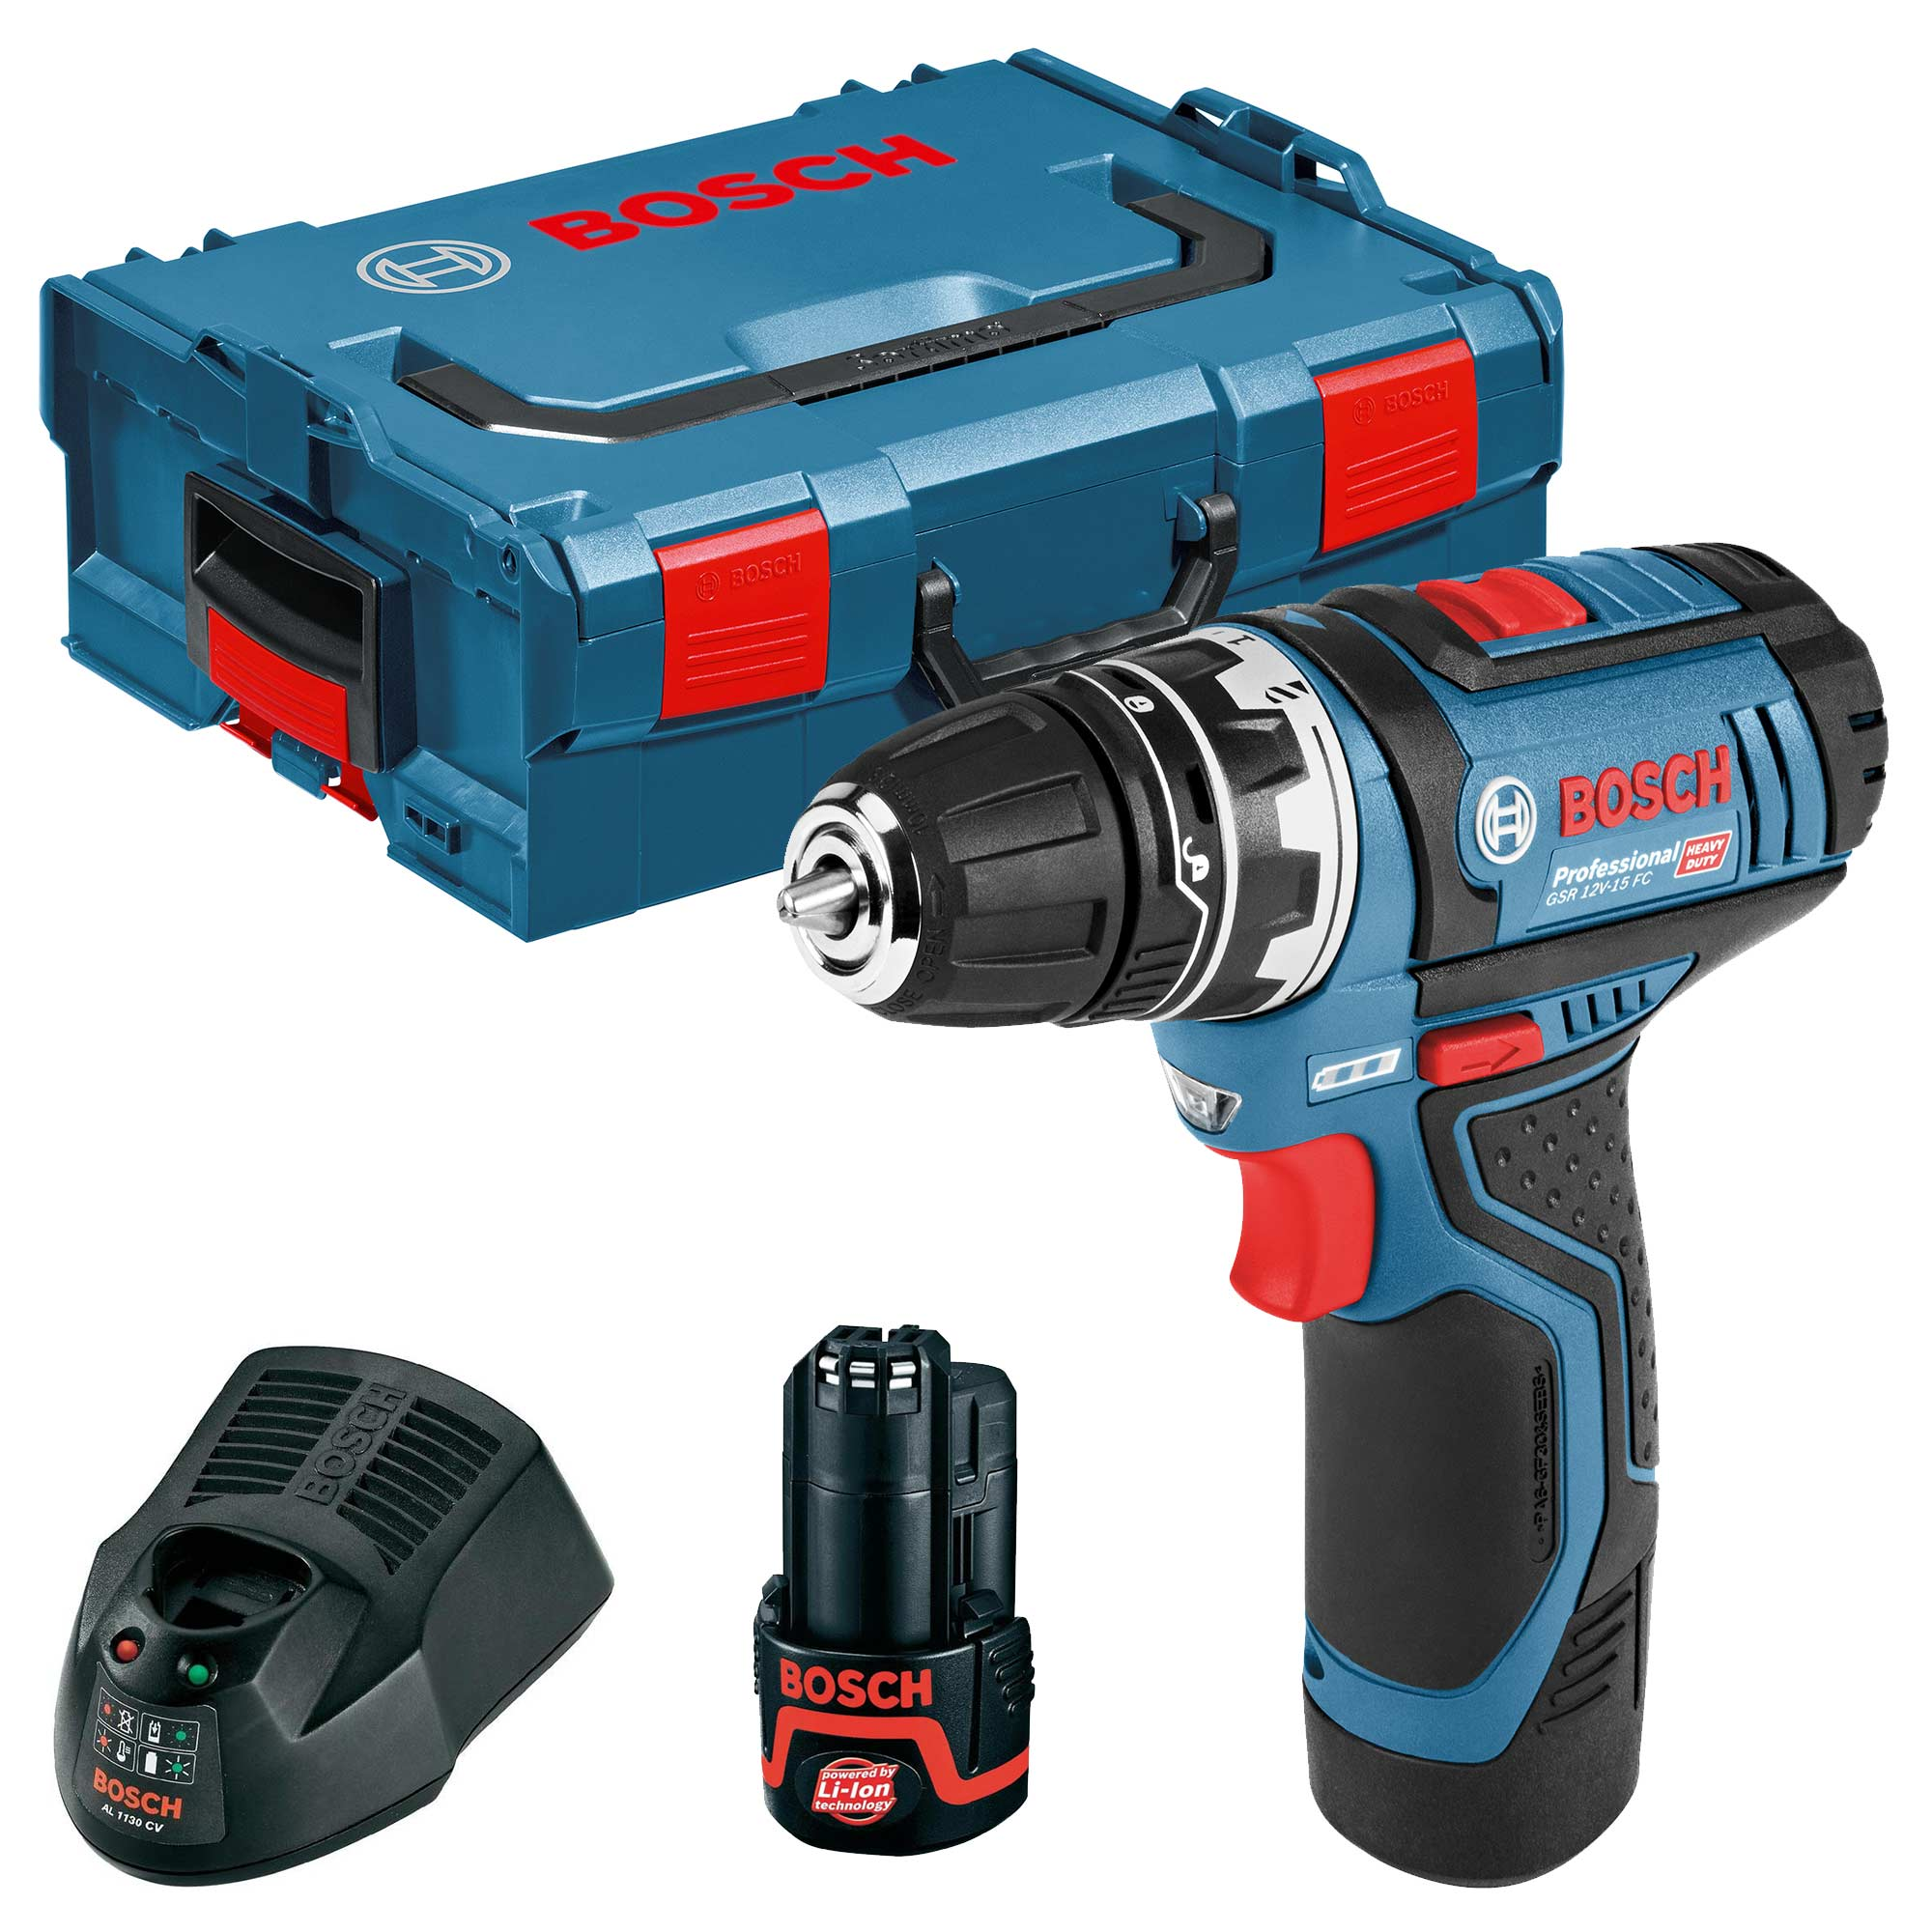 bosch gsr 12 v 15 bosch 12v cordless li ion drill driver. Black Bedroom Furniture Sets. Home Design Ideas